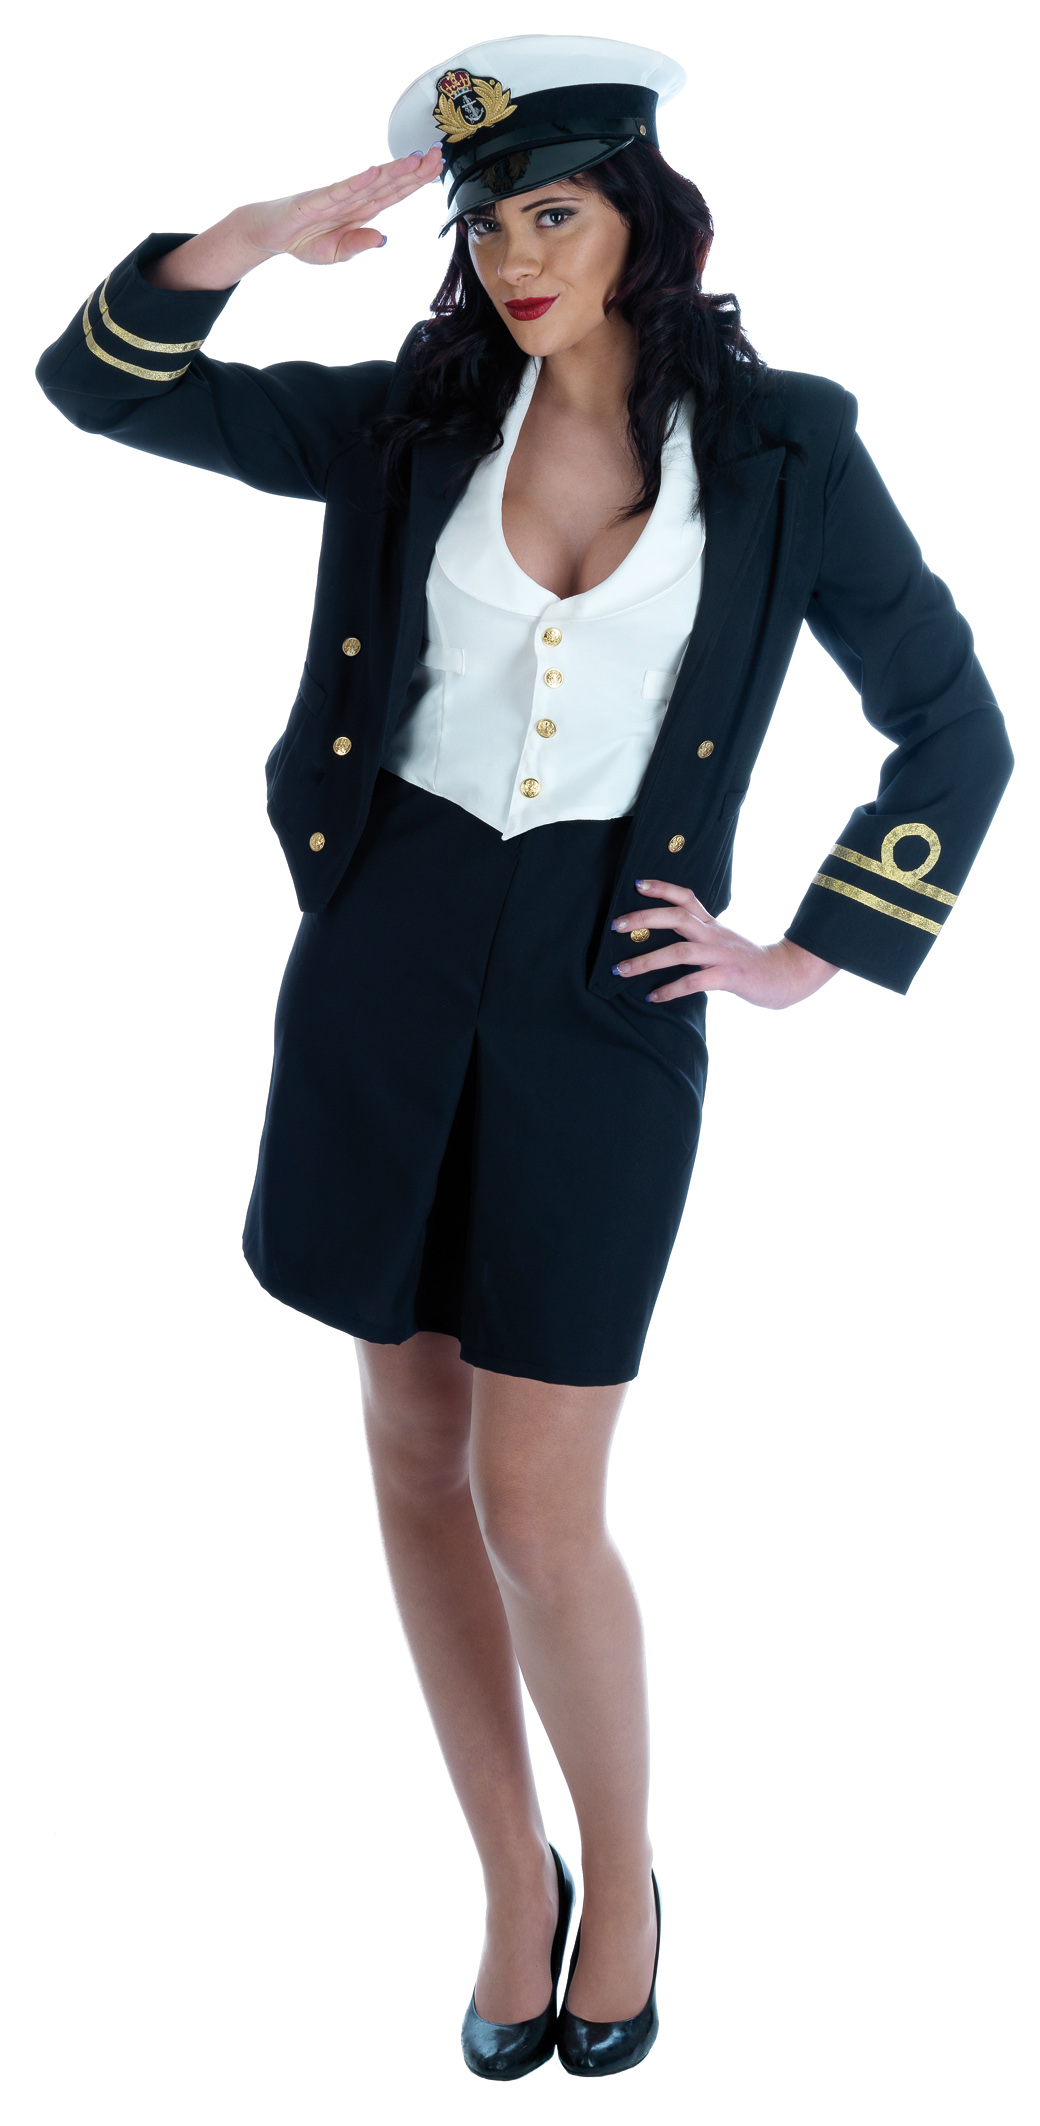 Women's Navy Uniform Sizing Chart Did you know that women's uniforms come in 3 different body types: Junior (J), Misses (M) and Women's (W)? The junior is 2